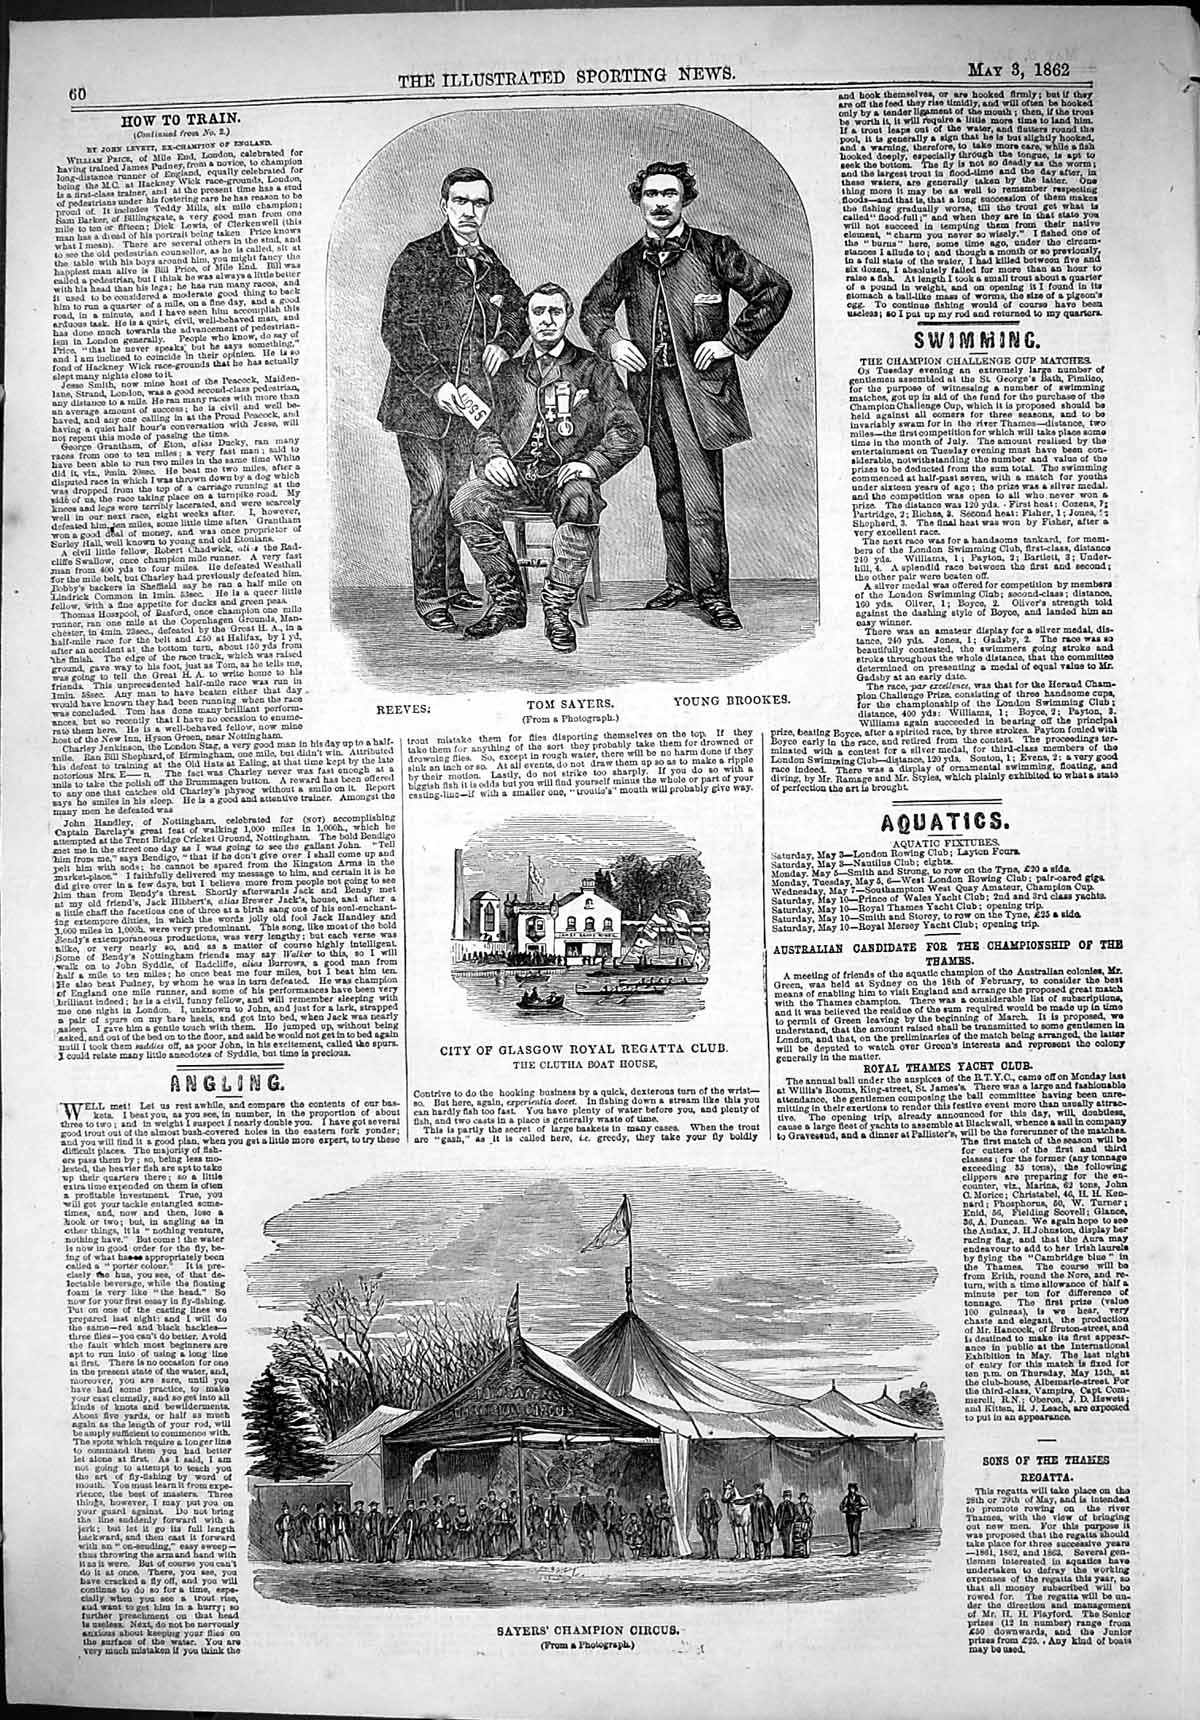 Old-1862-Reeves-Tom-Sayers-Brookes-Glasgow-Royal-Regatta-Clutha-Boat-Victorian